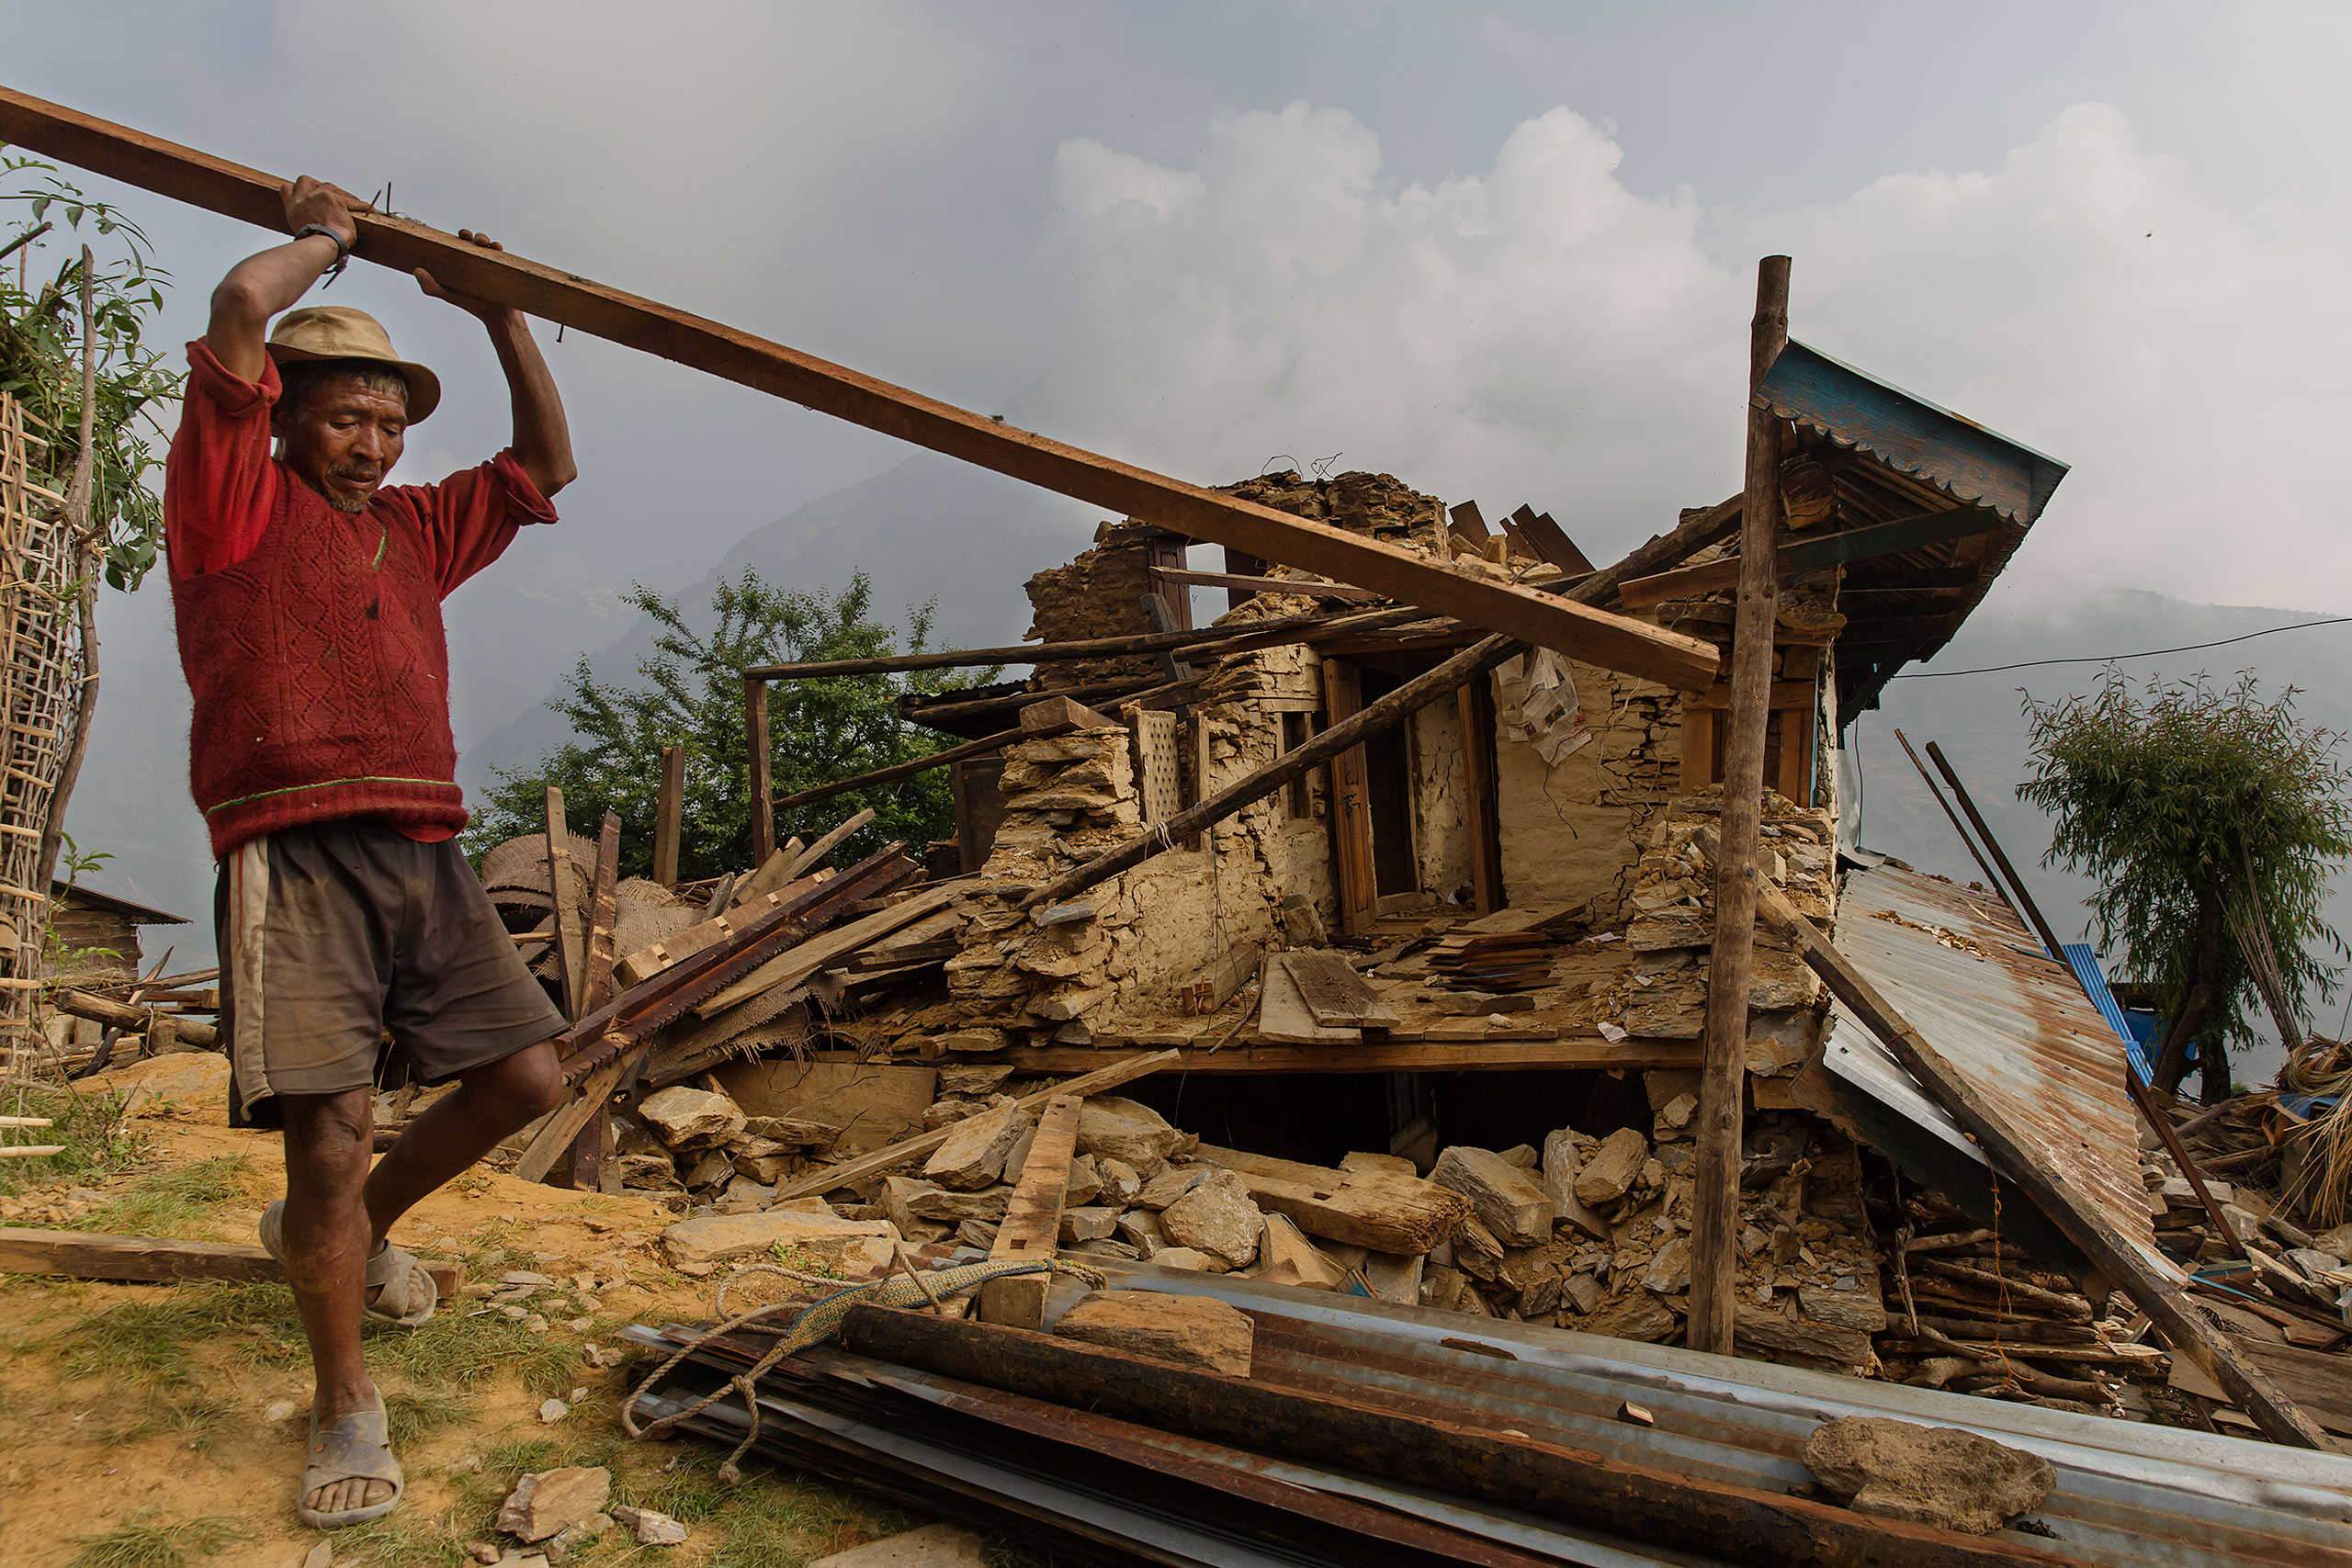 A villager salvages building supplies in Gumda, in the Gorkha district of Nepal, May 8, 2015.